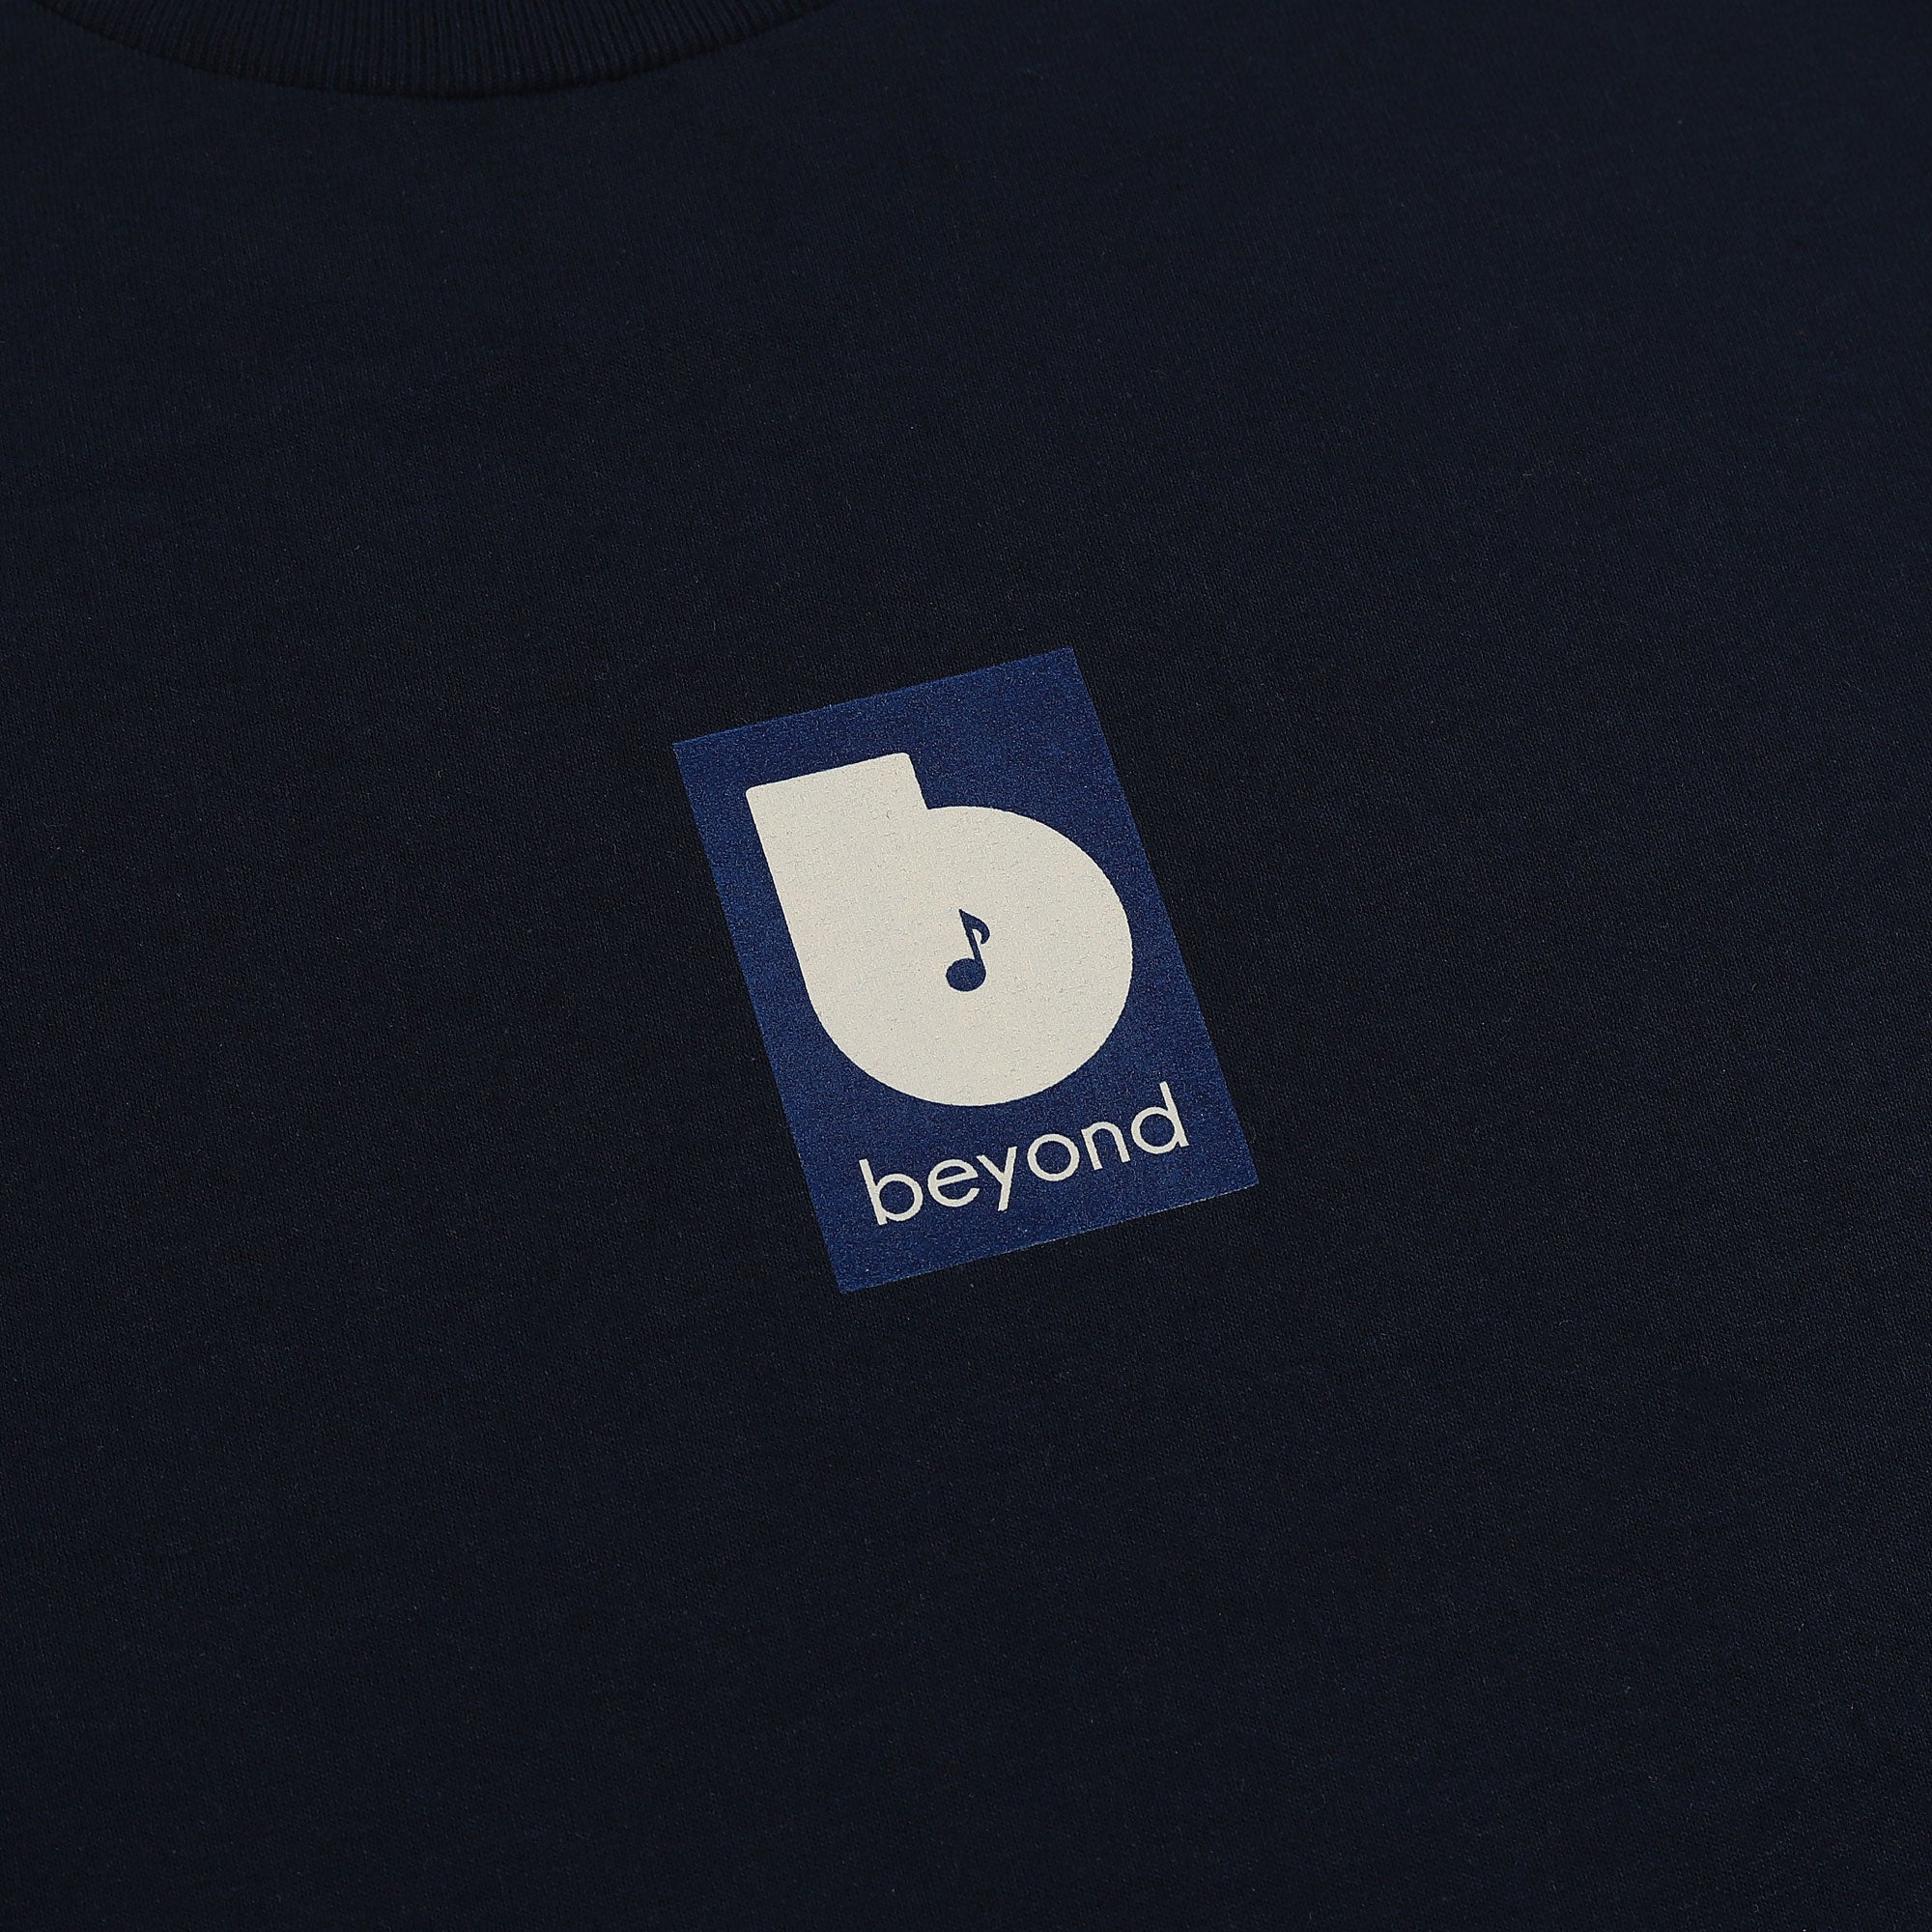 Beyond Note Tee Product Photo #2